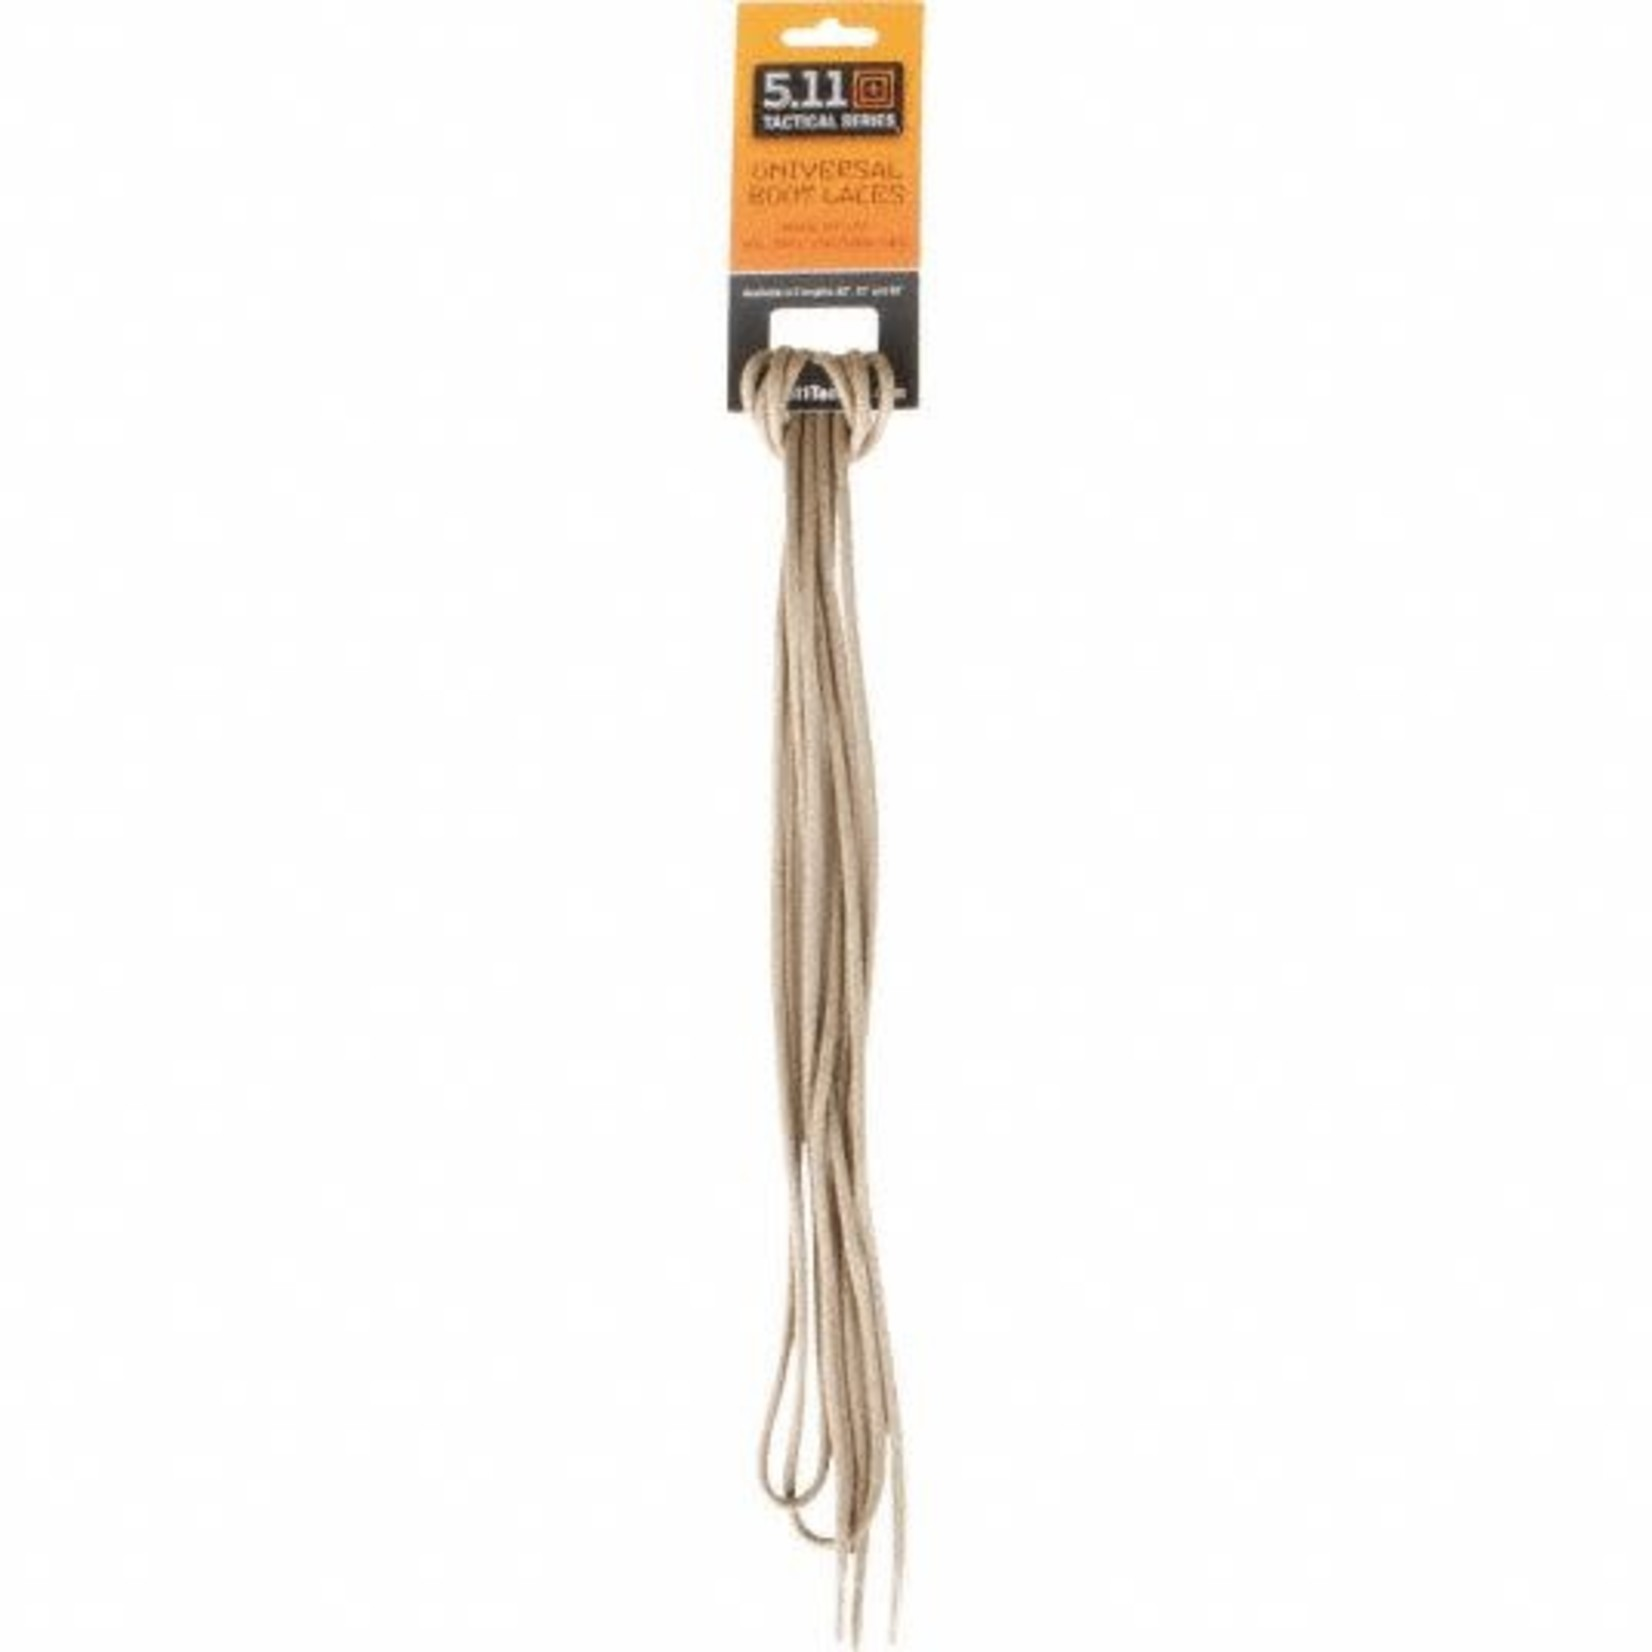 5.11 Tactical 5.11 Universal Boot Laces